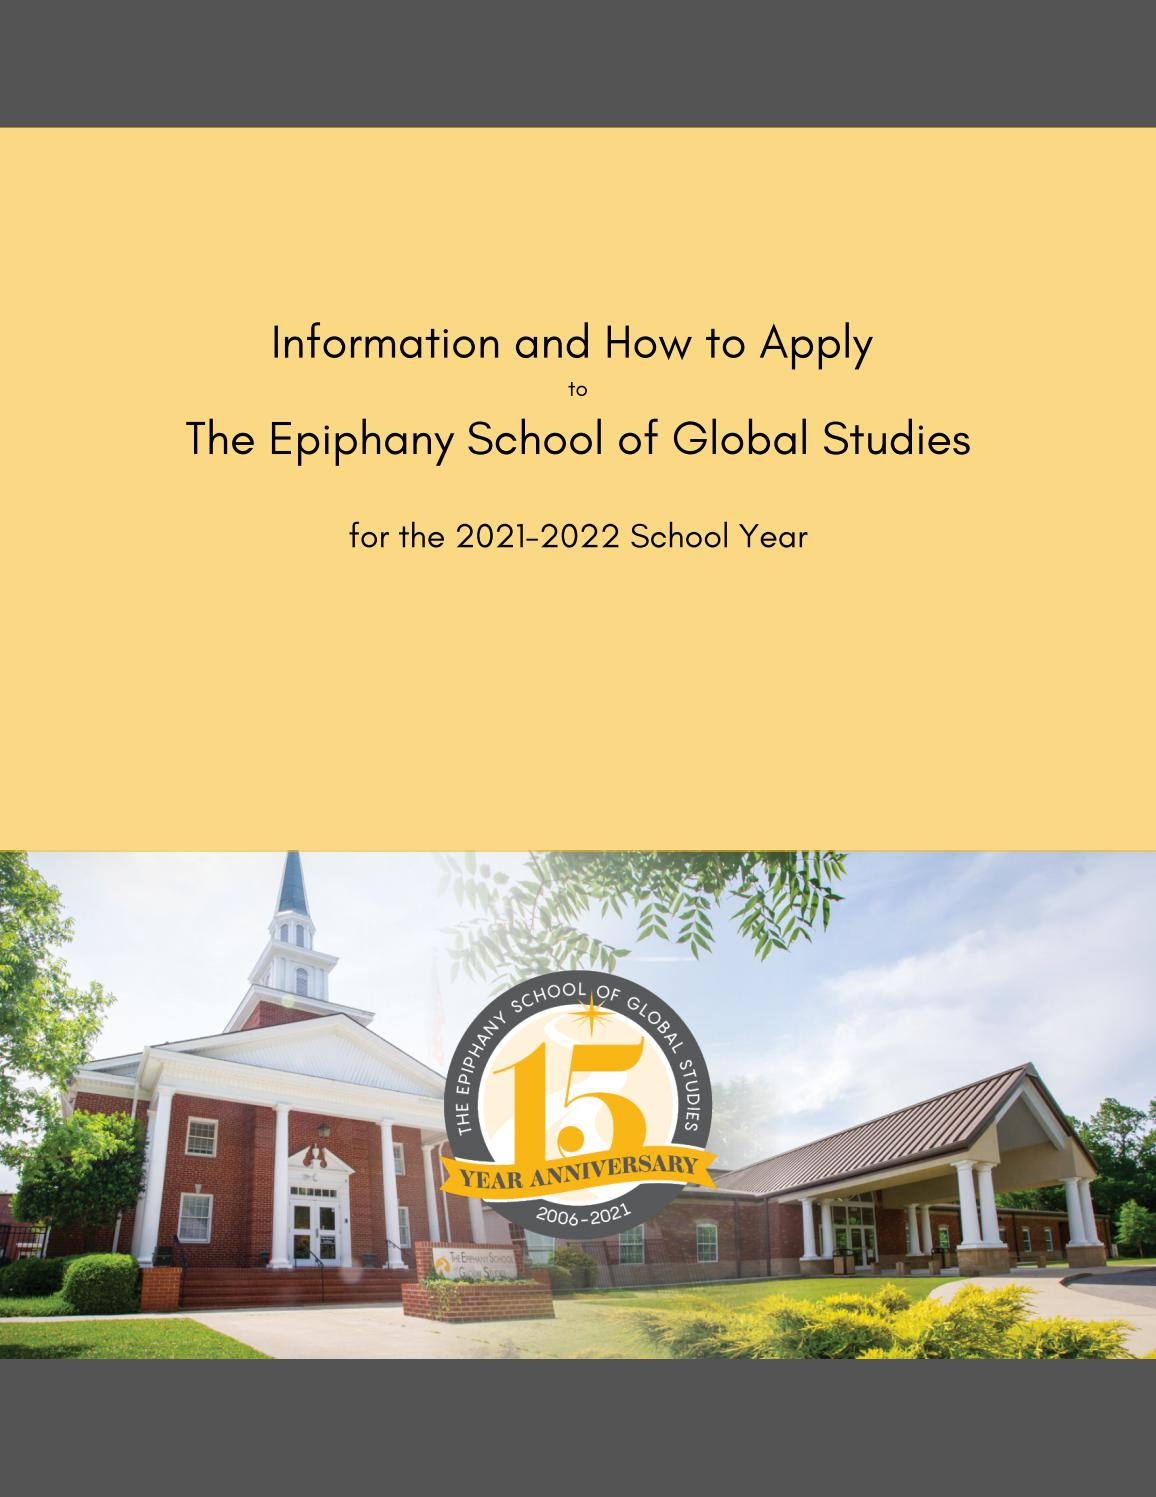 Unc Charlotte Academic Calendar 2022.21 22 Admissions Packet By The Epiphany School Of Global Studies Issuu